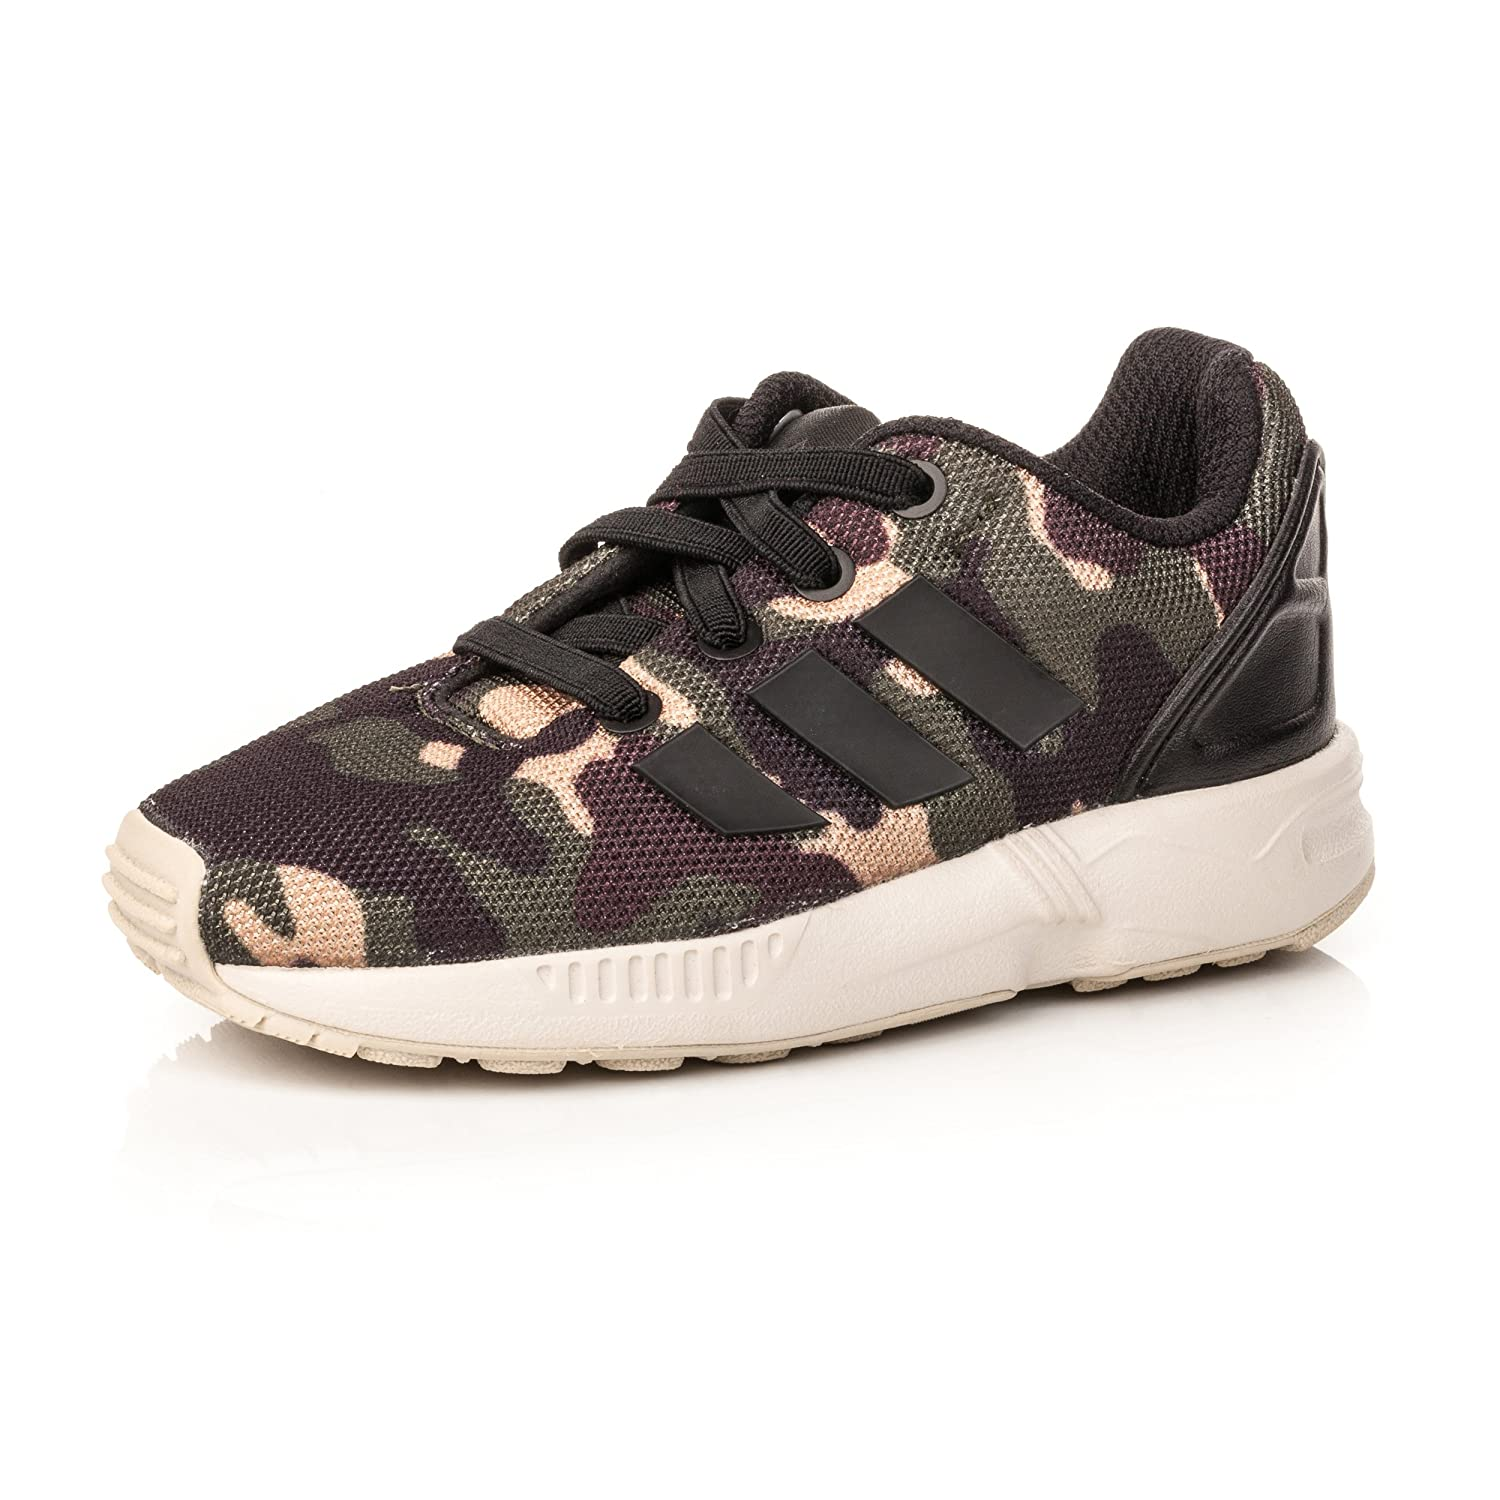 new concept a3f21 97395 adidas Boys Original Zx Flux Camo Trainers Black-Elastic Laces-Cushioned  Collar  Amazon.co.uk  Shoes   Bags